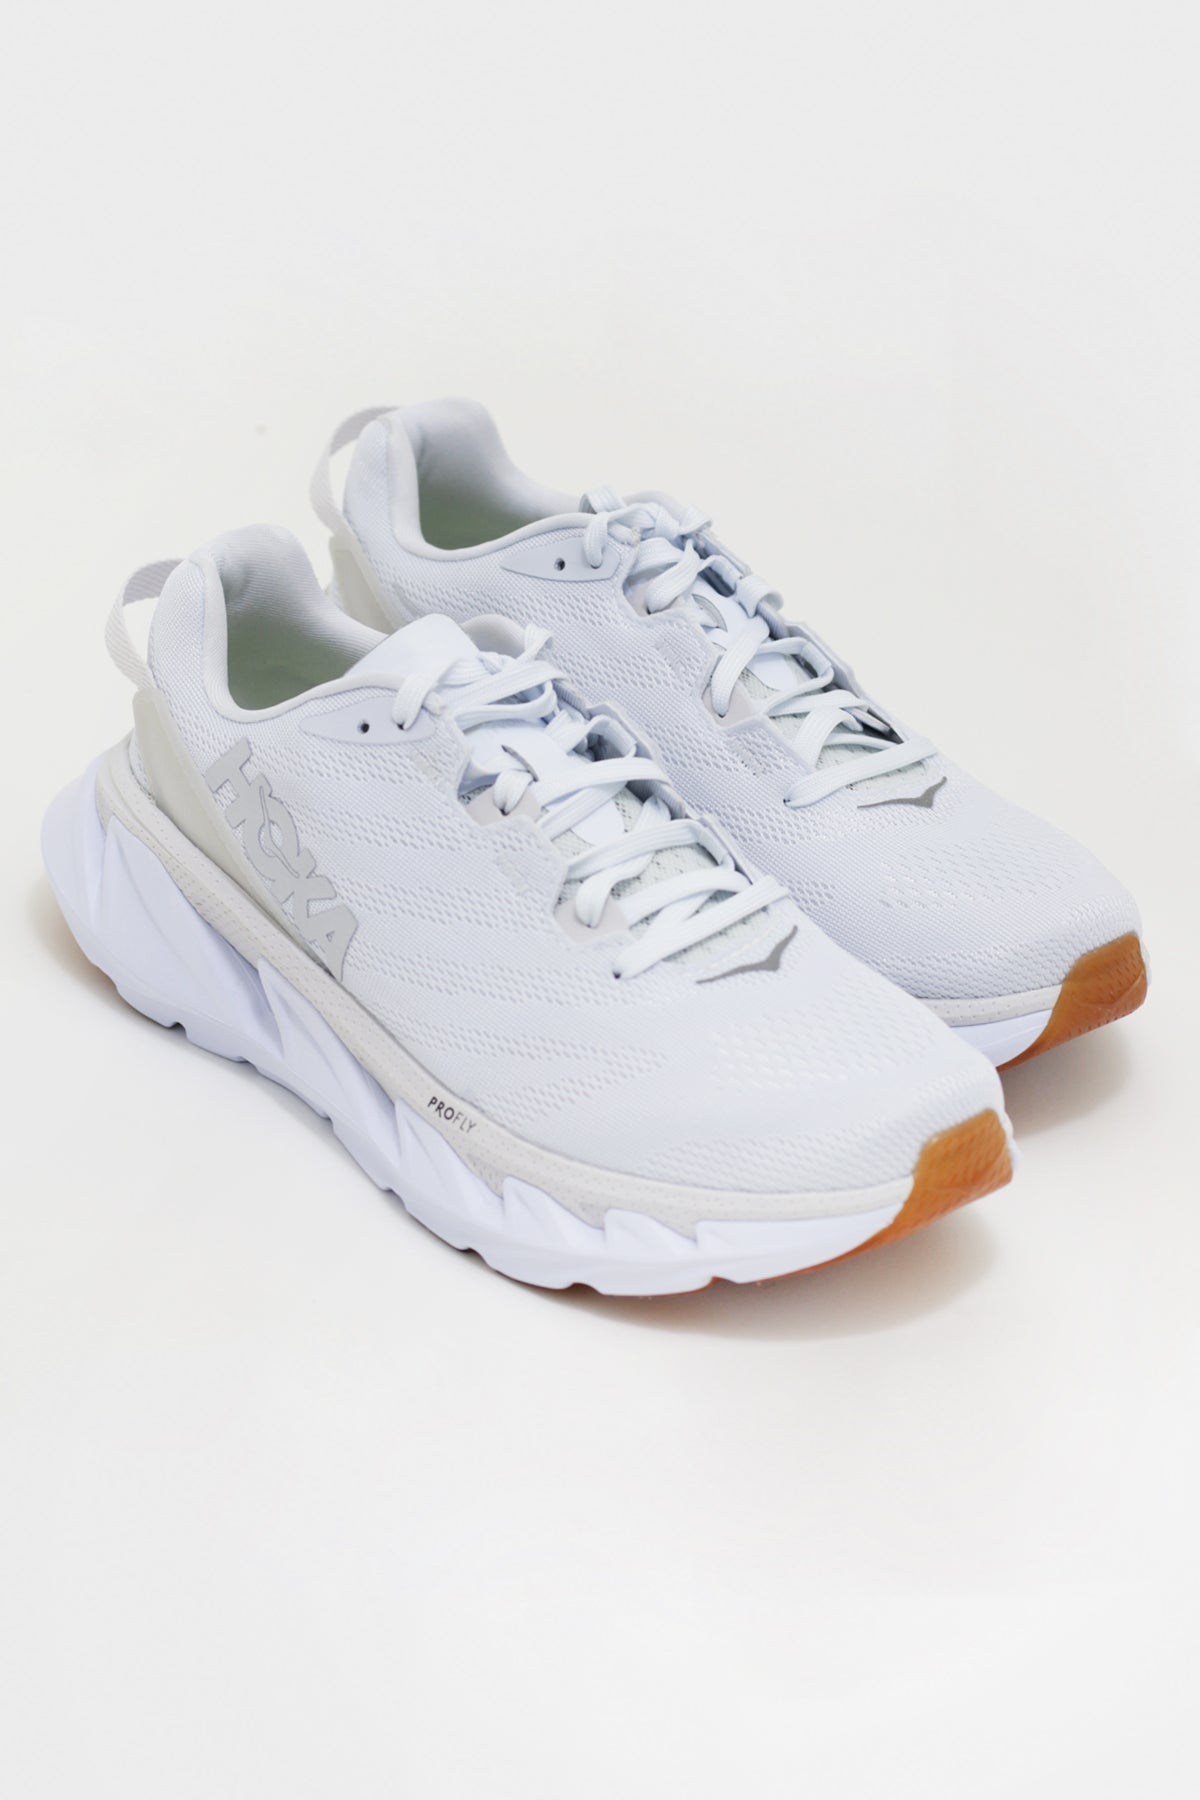 HOKA ONE ONE - Elevon 2 - White/Nimbus Cloud - Canoe Club